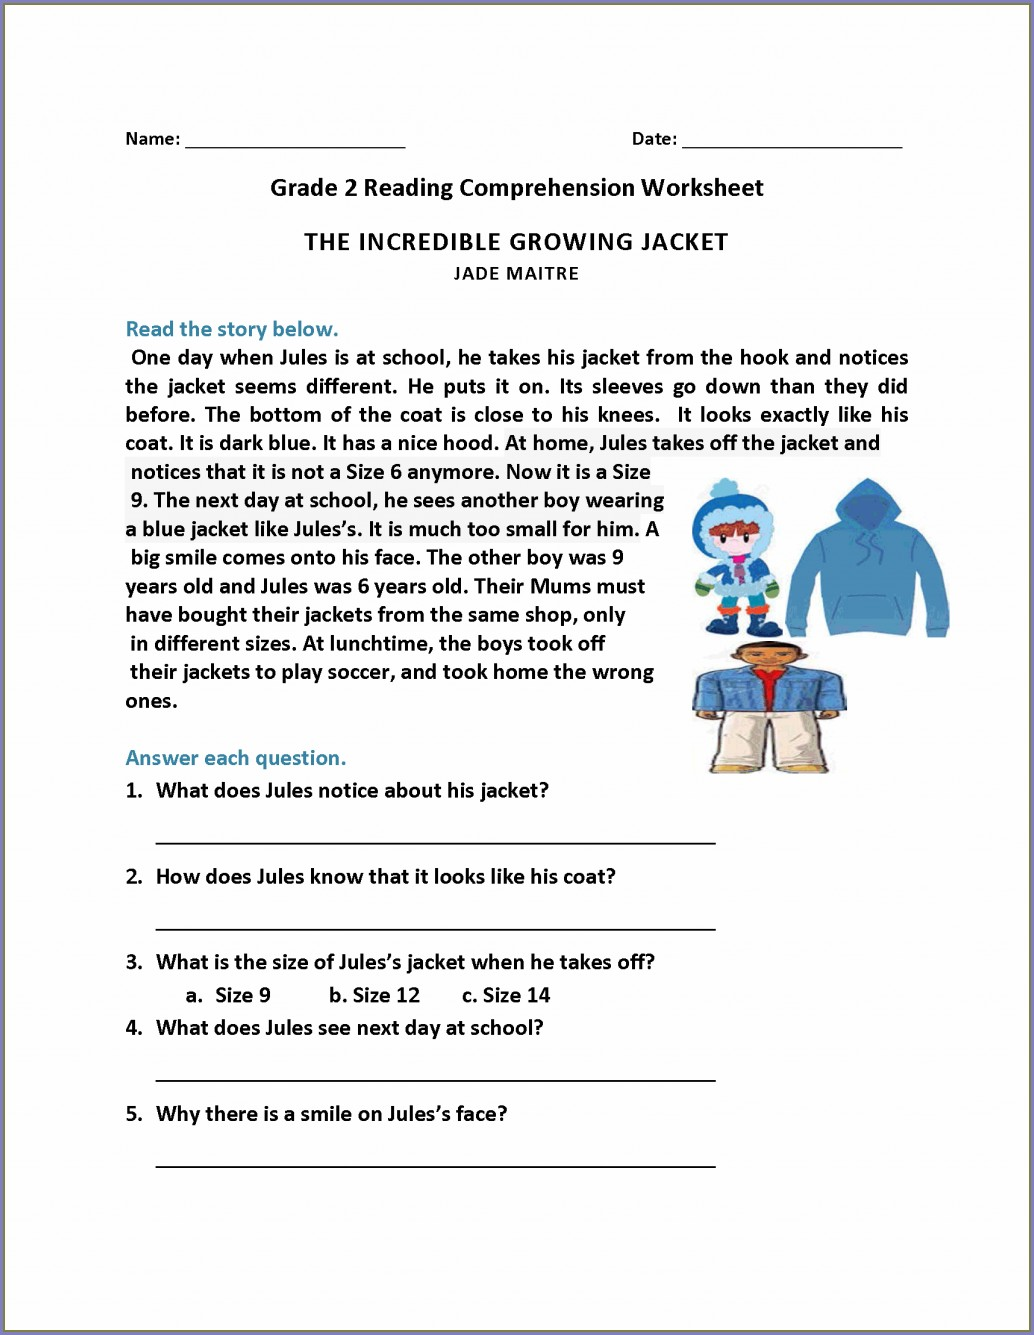 Reading Comprehension Worksheet 2nd Grade Pdf